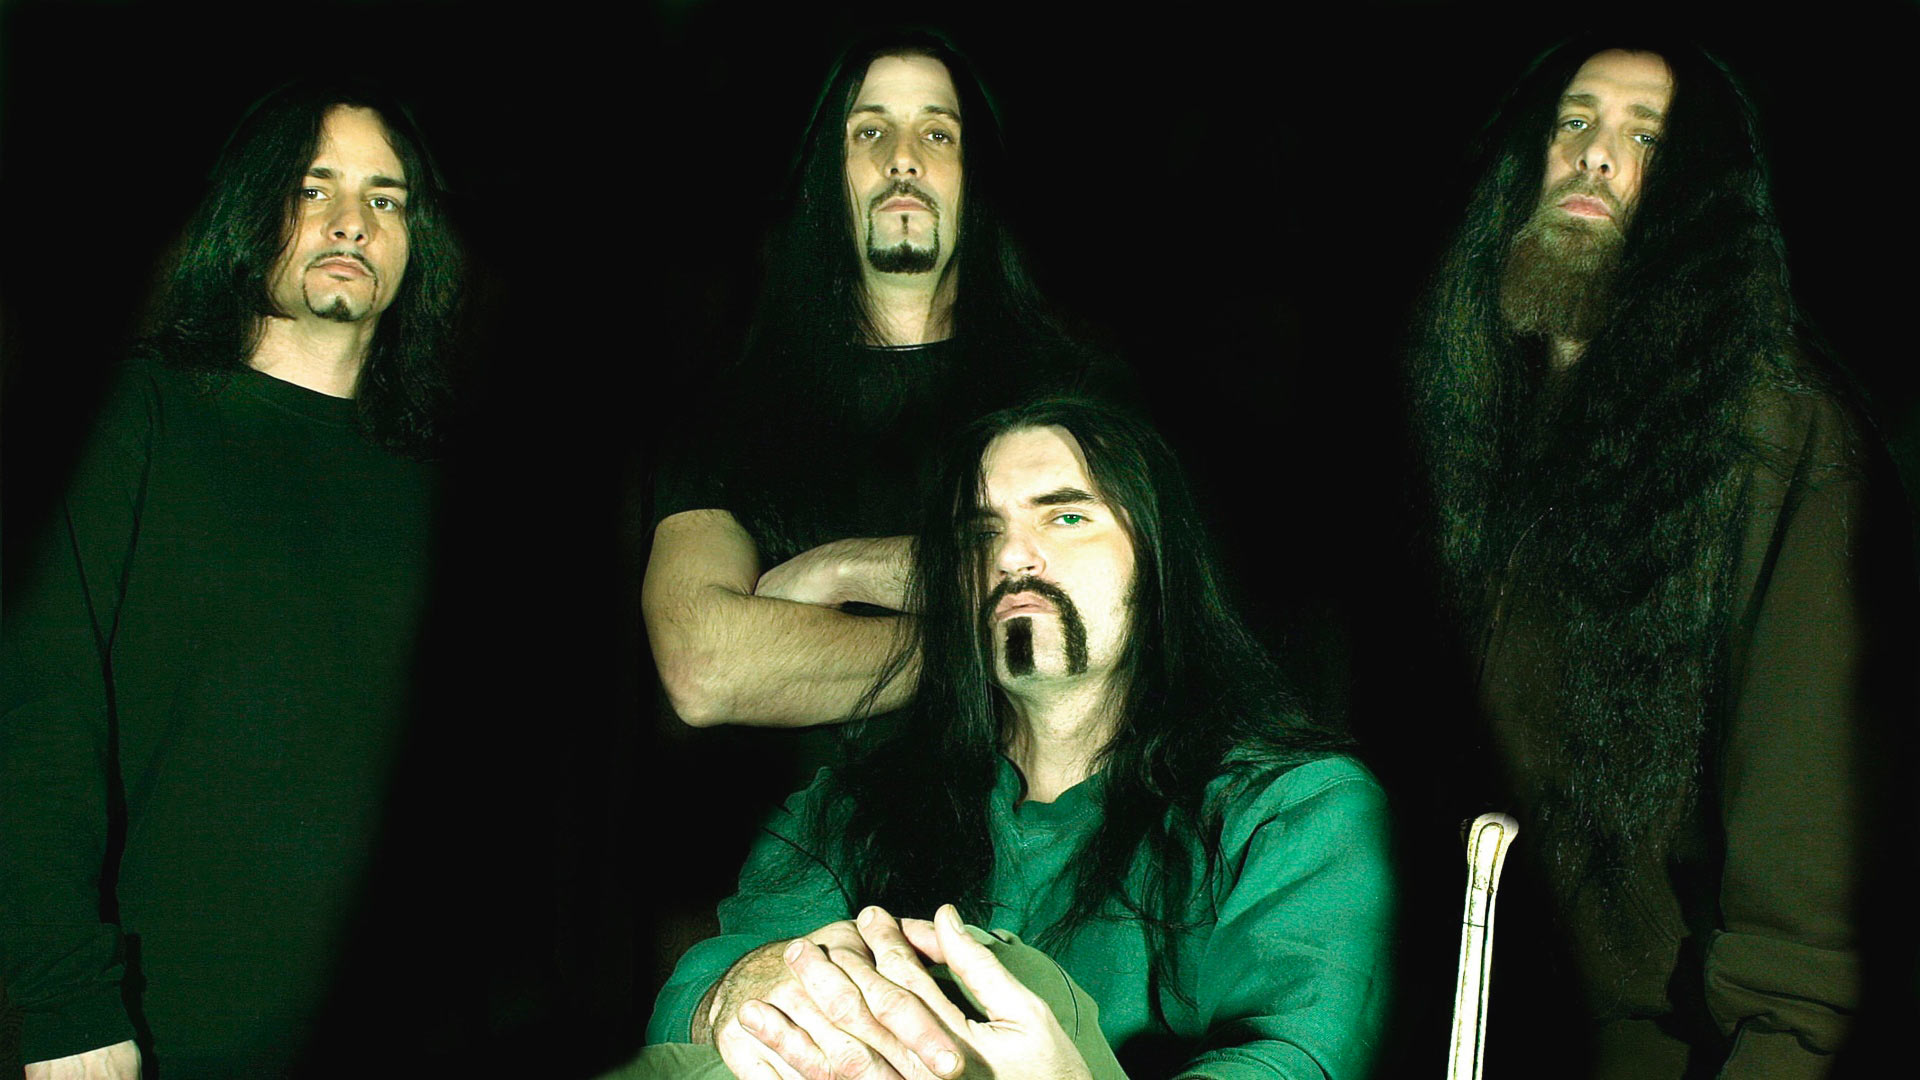 Repulsion Band Type O Negative - Ency...